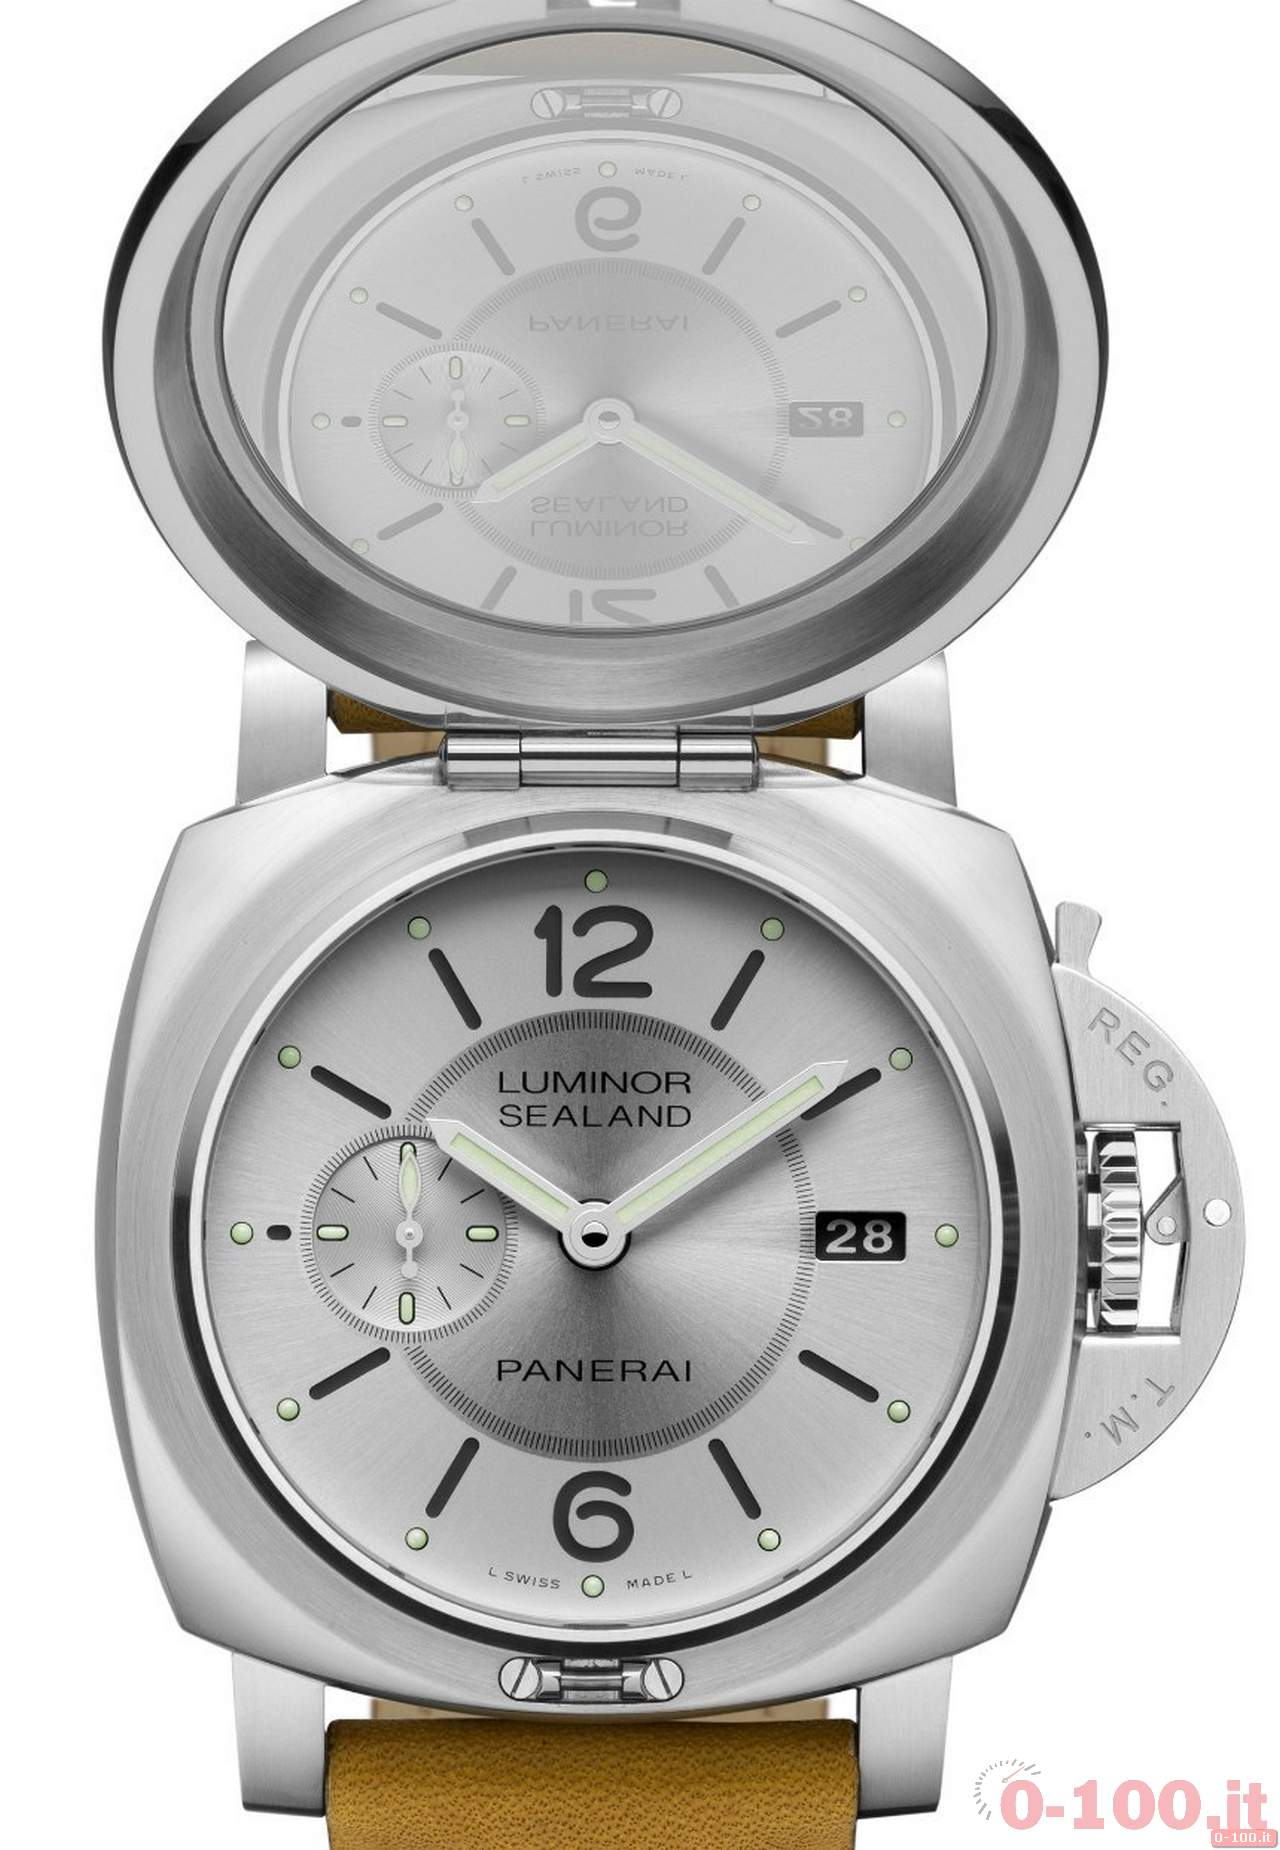 Panerai-Luminor-1950-Sealand-3-Days-Automatic-Acciaio-PAM00850-aBlogtoWatch6